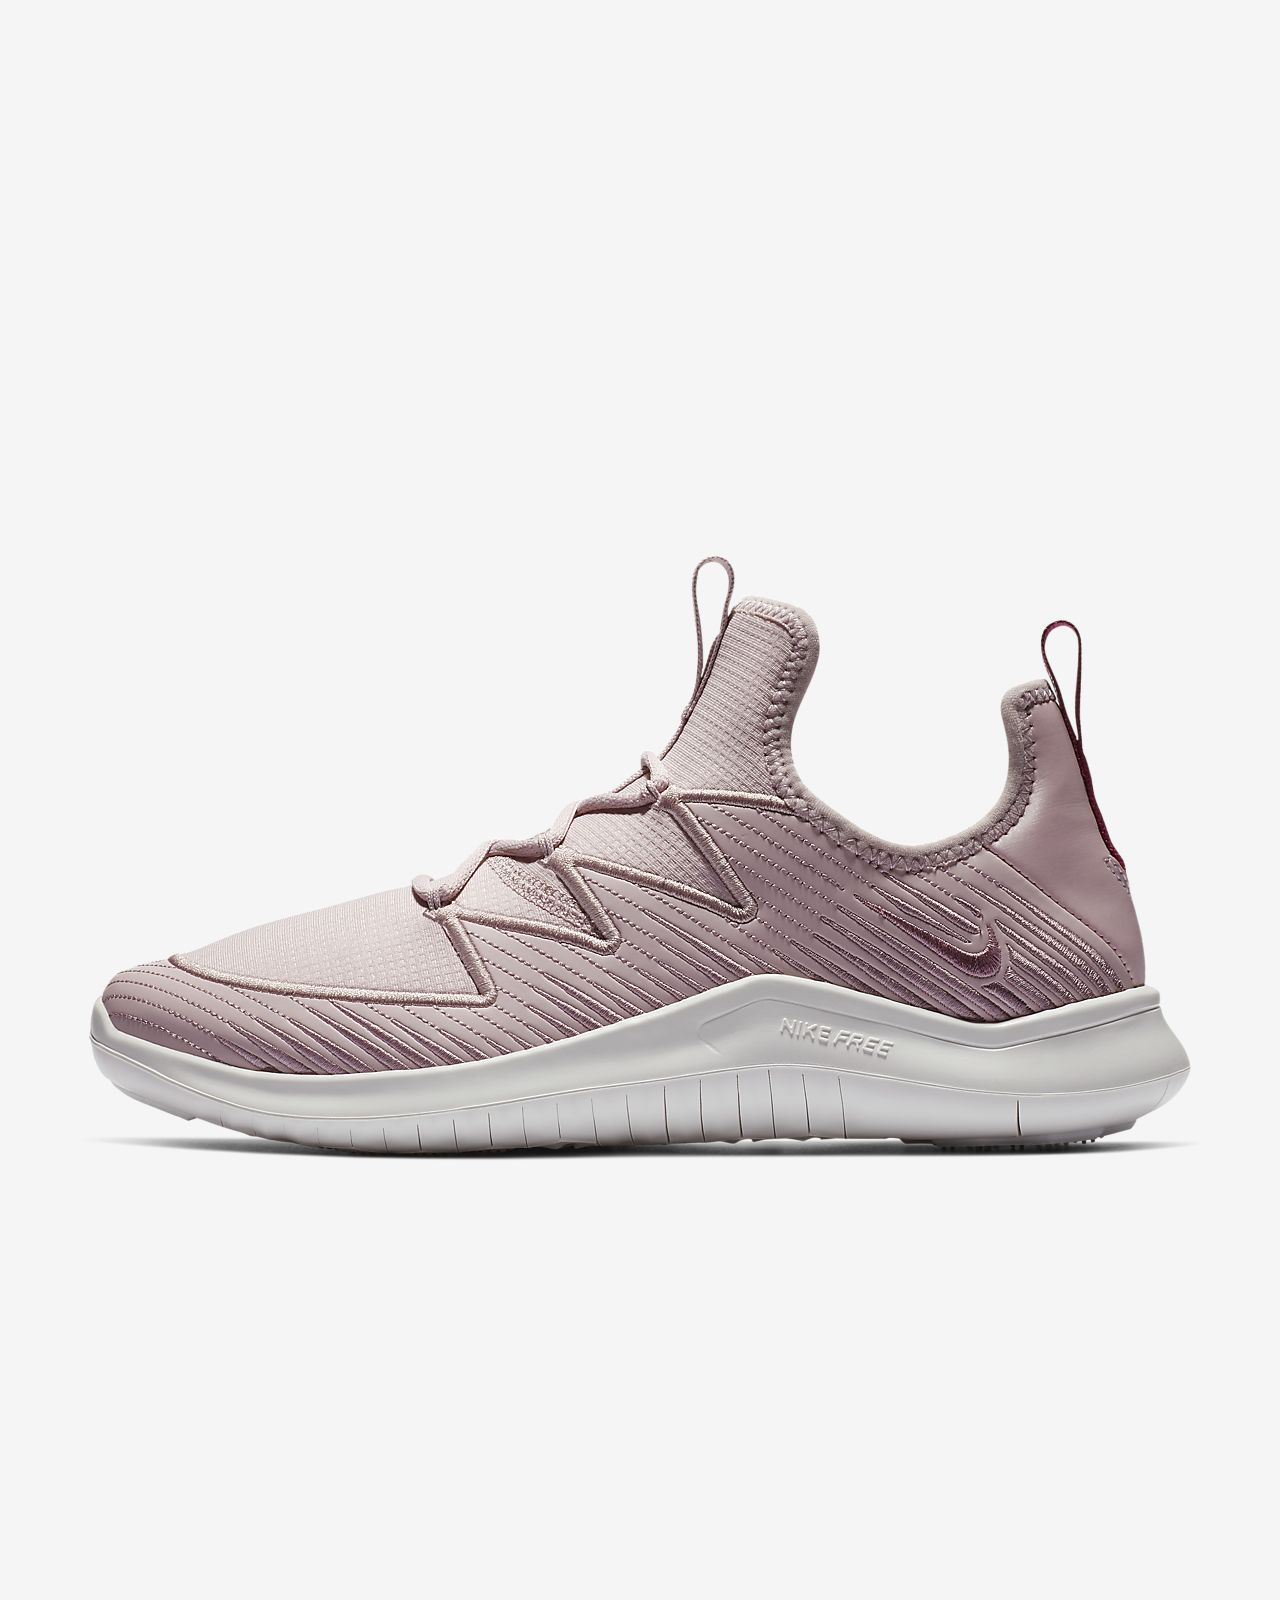 Nike Free TR Ultra Women's Training Shoe